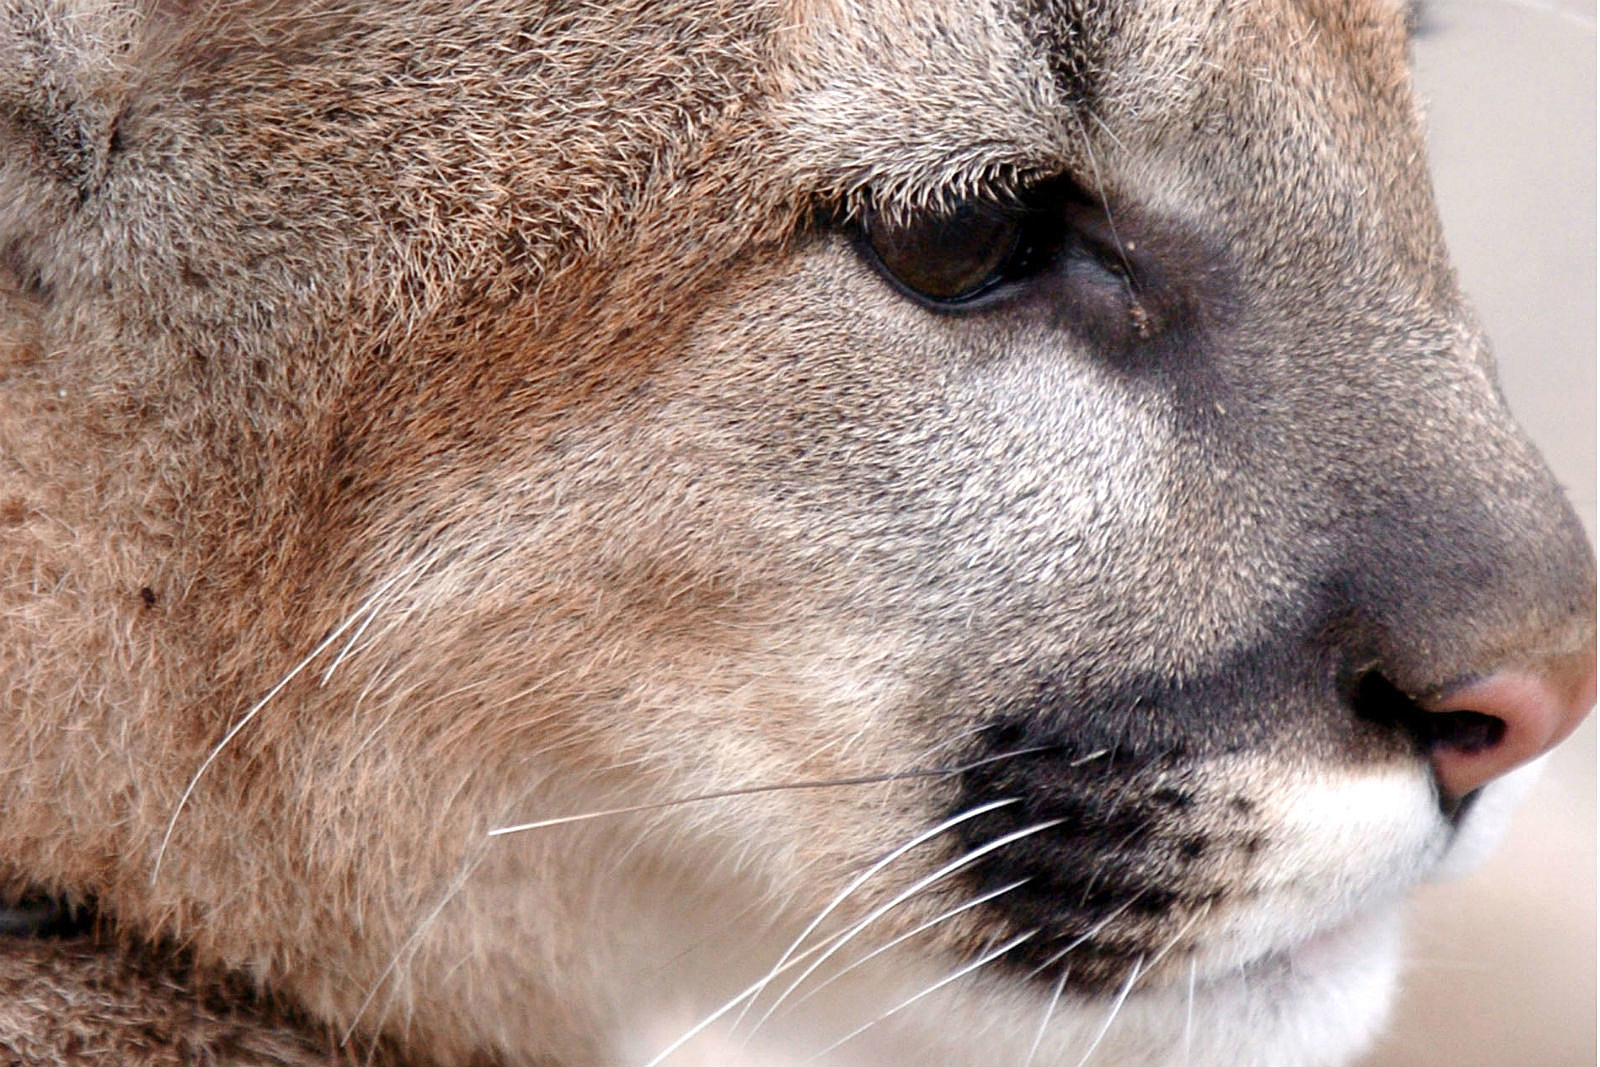 Mountain Lion_Mike Simons/Getty